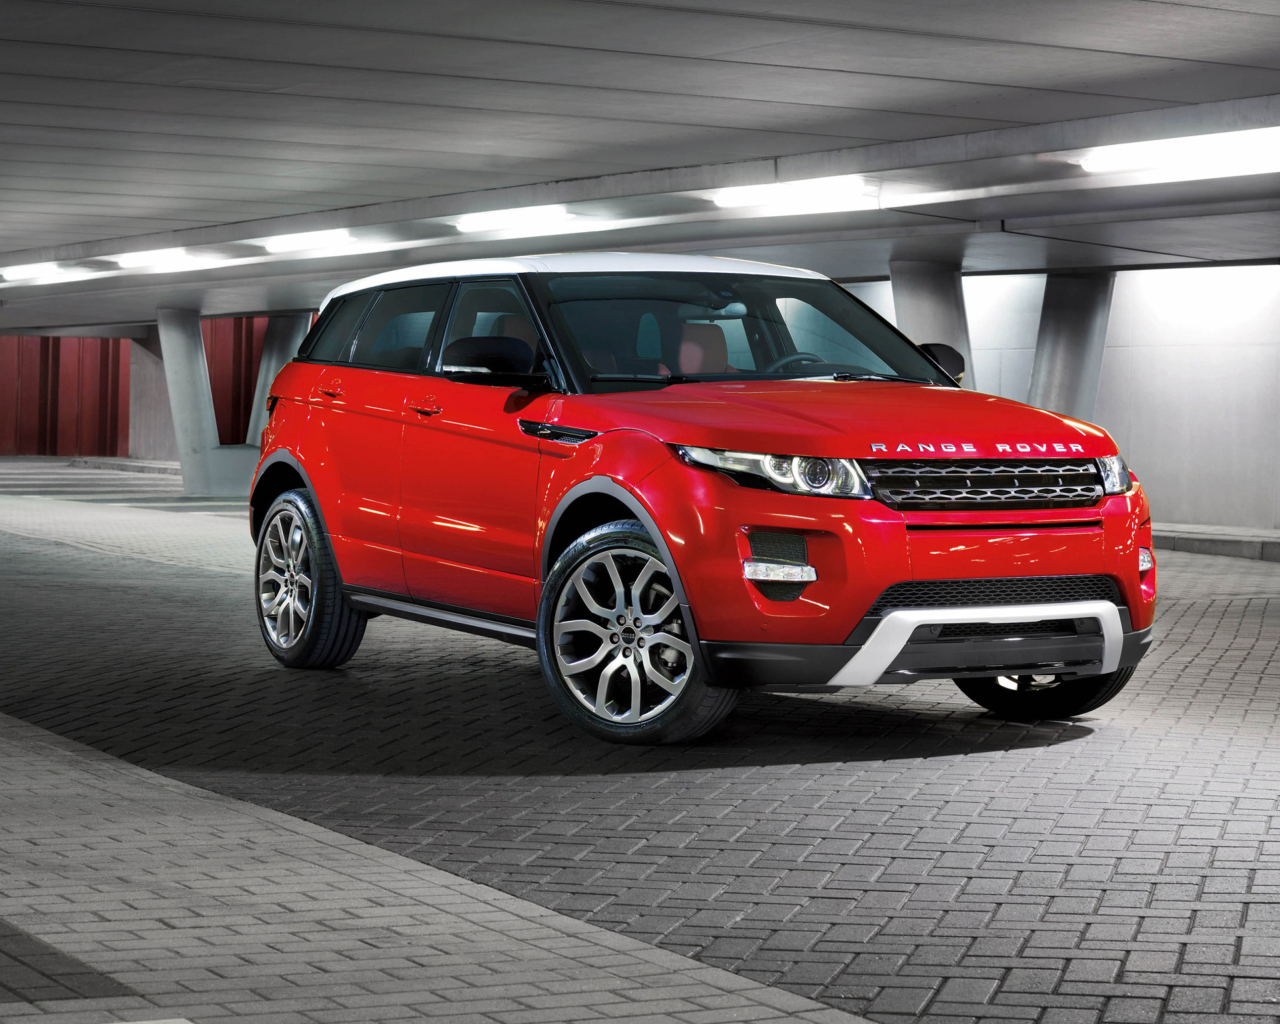 Das Range Rover Wallpaper 1280x1024